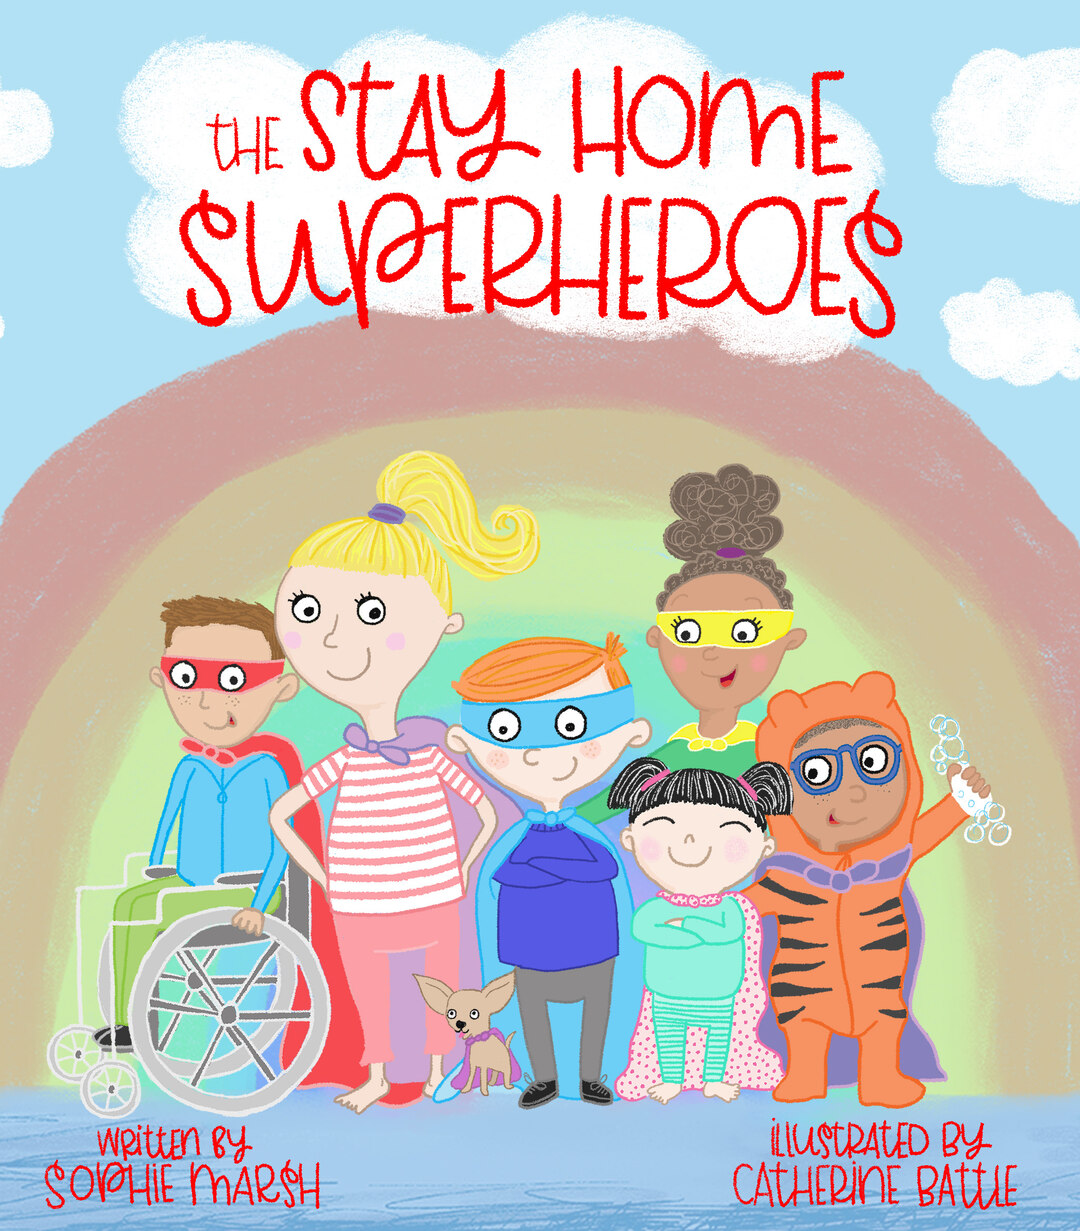 Page 1 of The Stay Home Superheroes